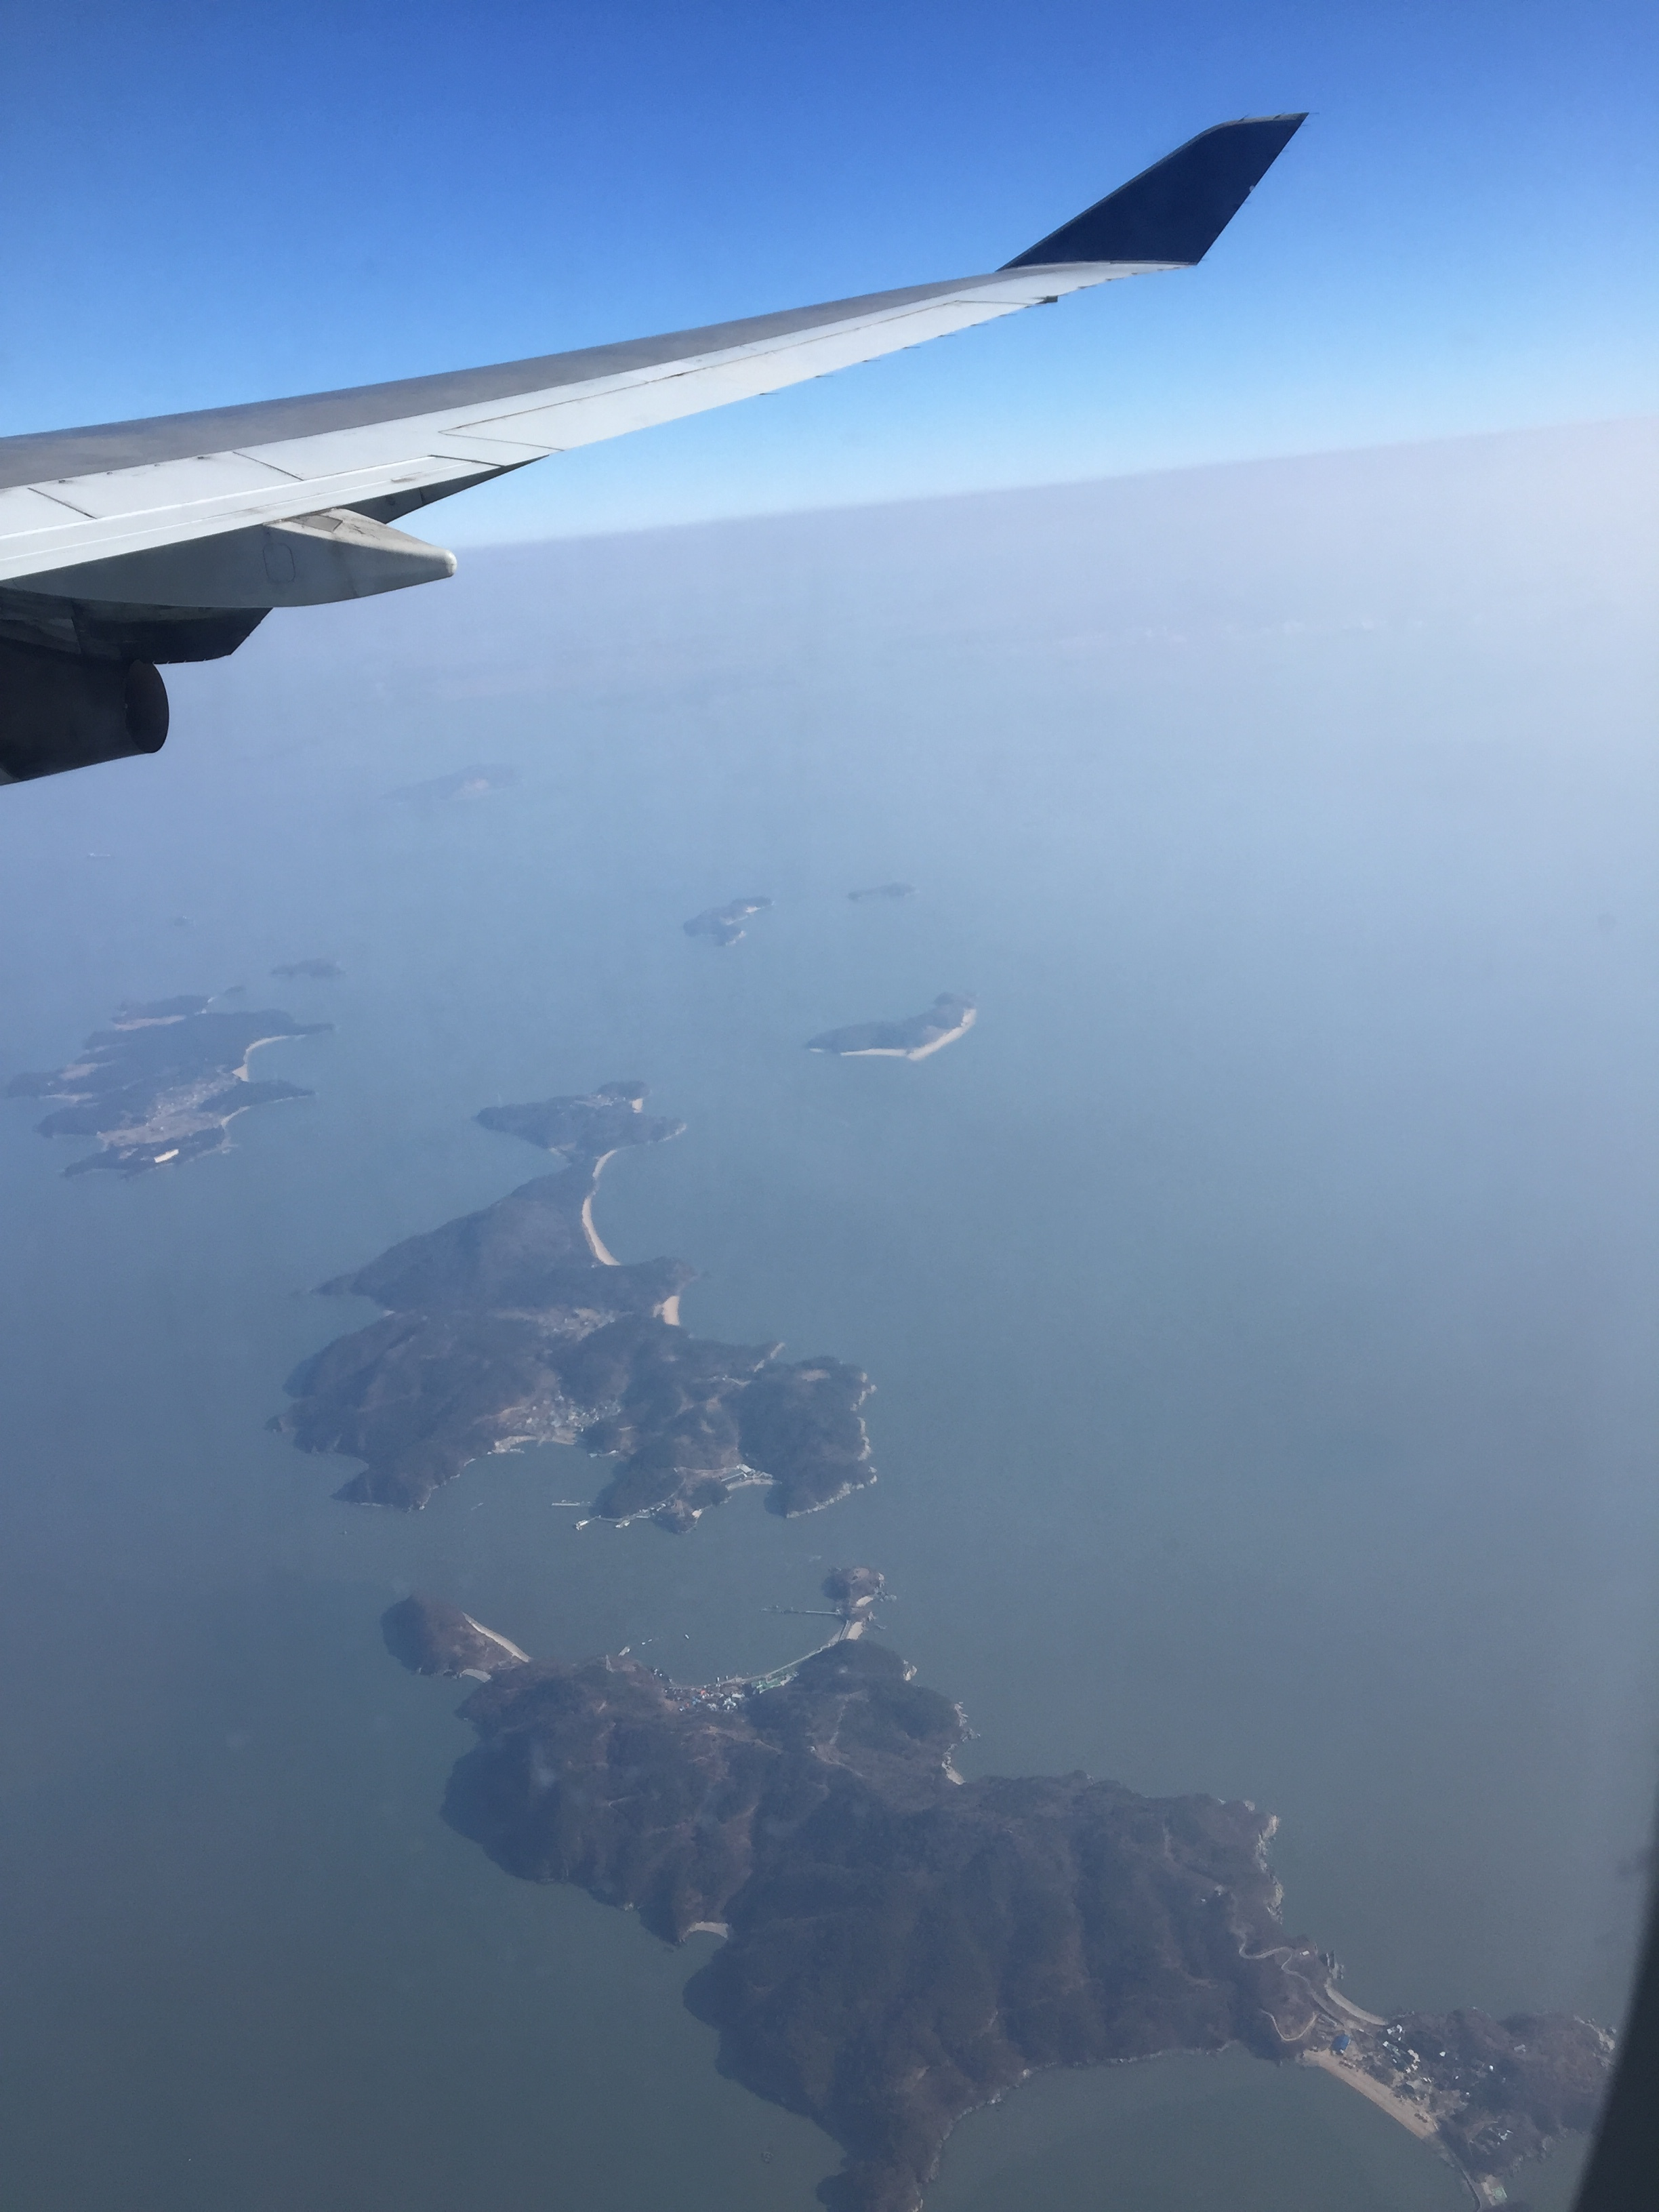 The view from my airplane as we entered Seoul after a 14-hour flight.